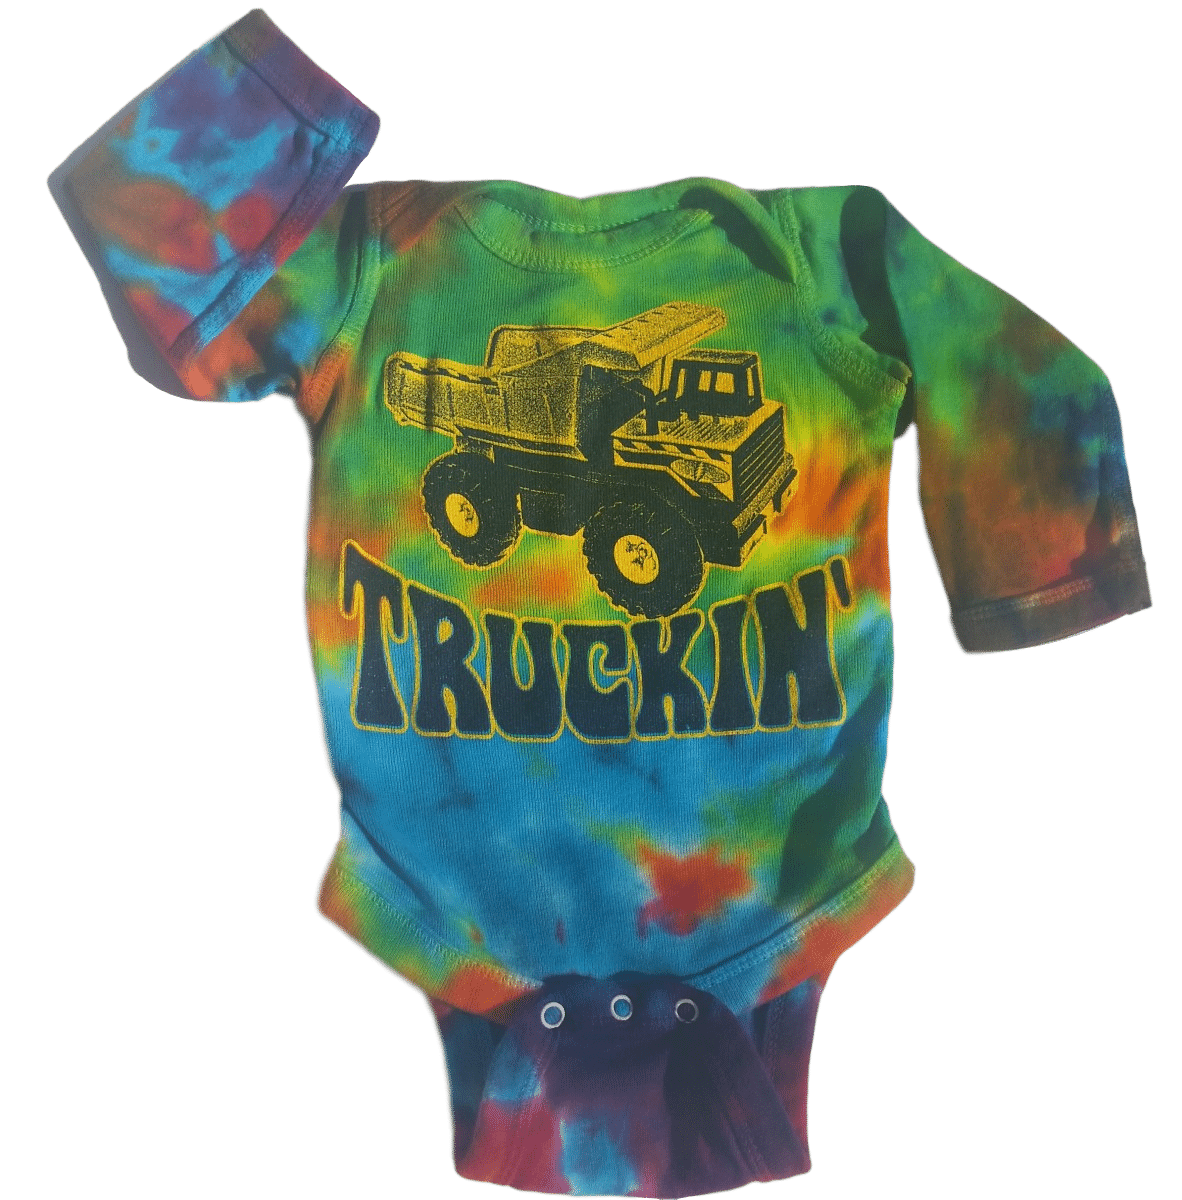 fed8d8357 LONG SLEEVE Truckin' infant tiedye baby onesie romper - Grateful ...